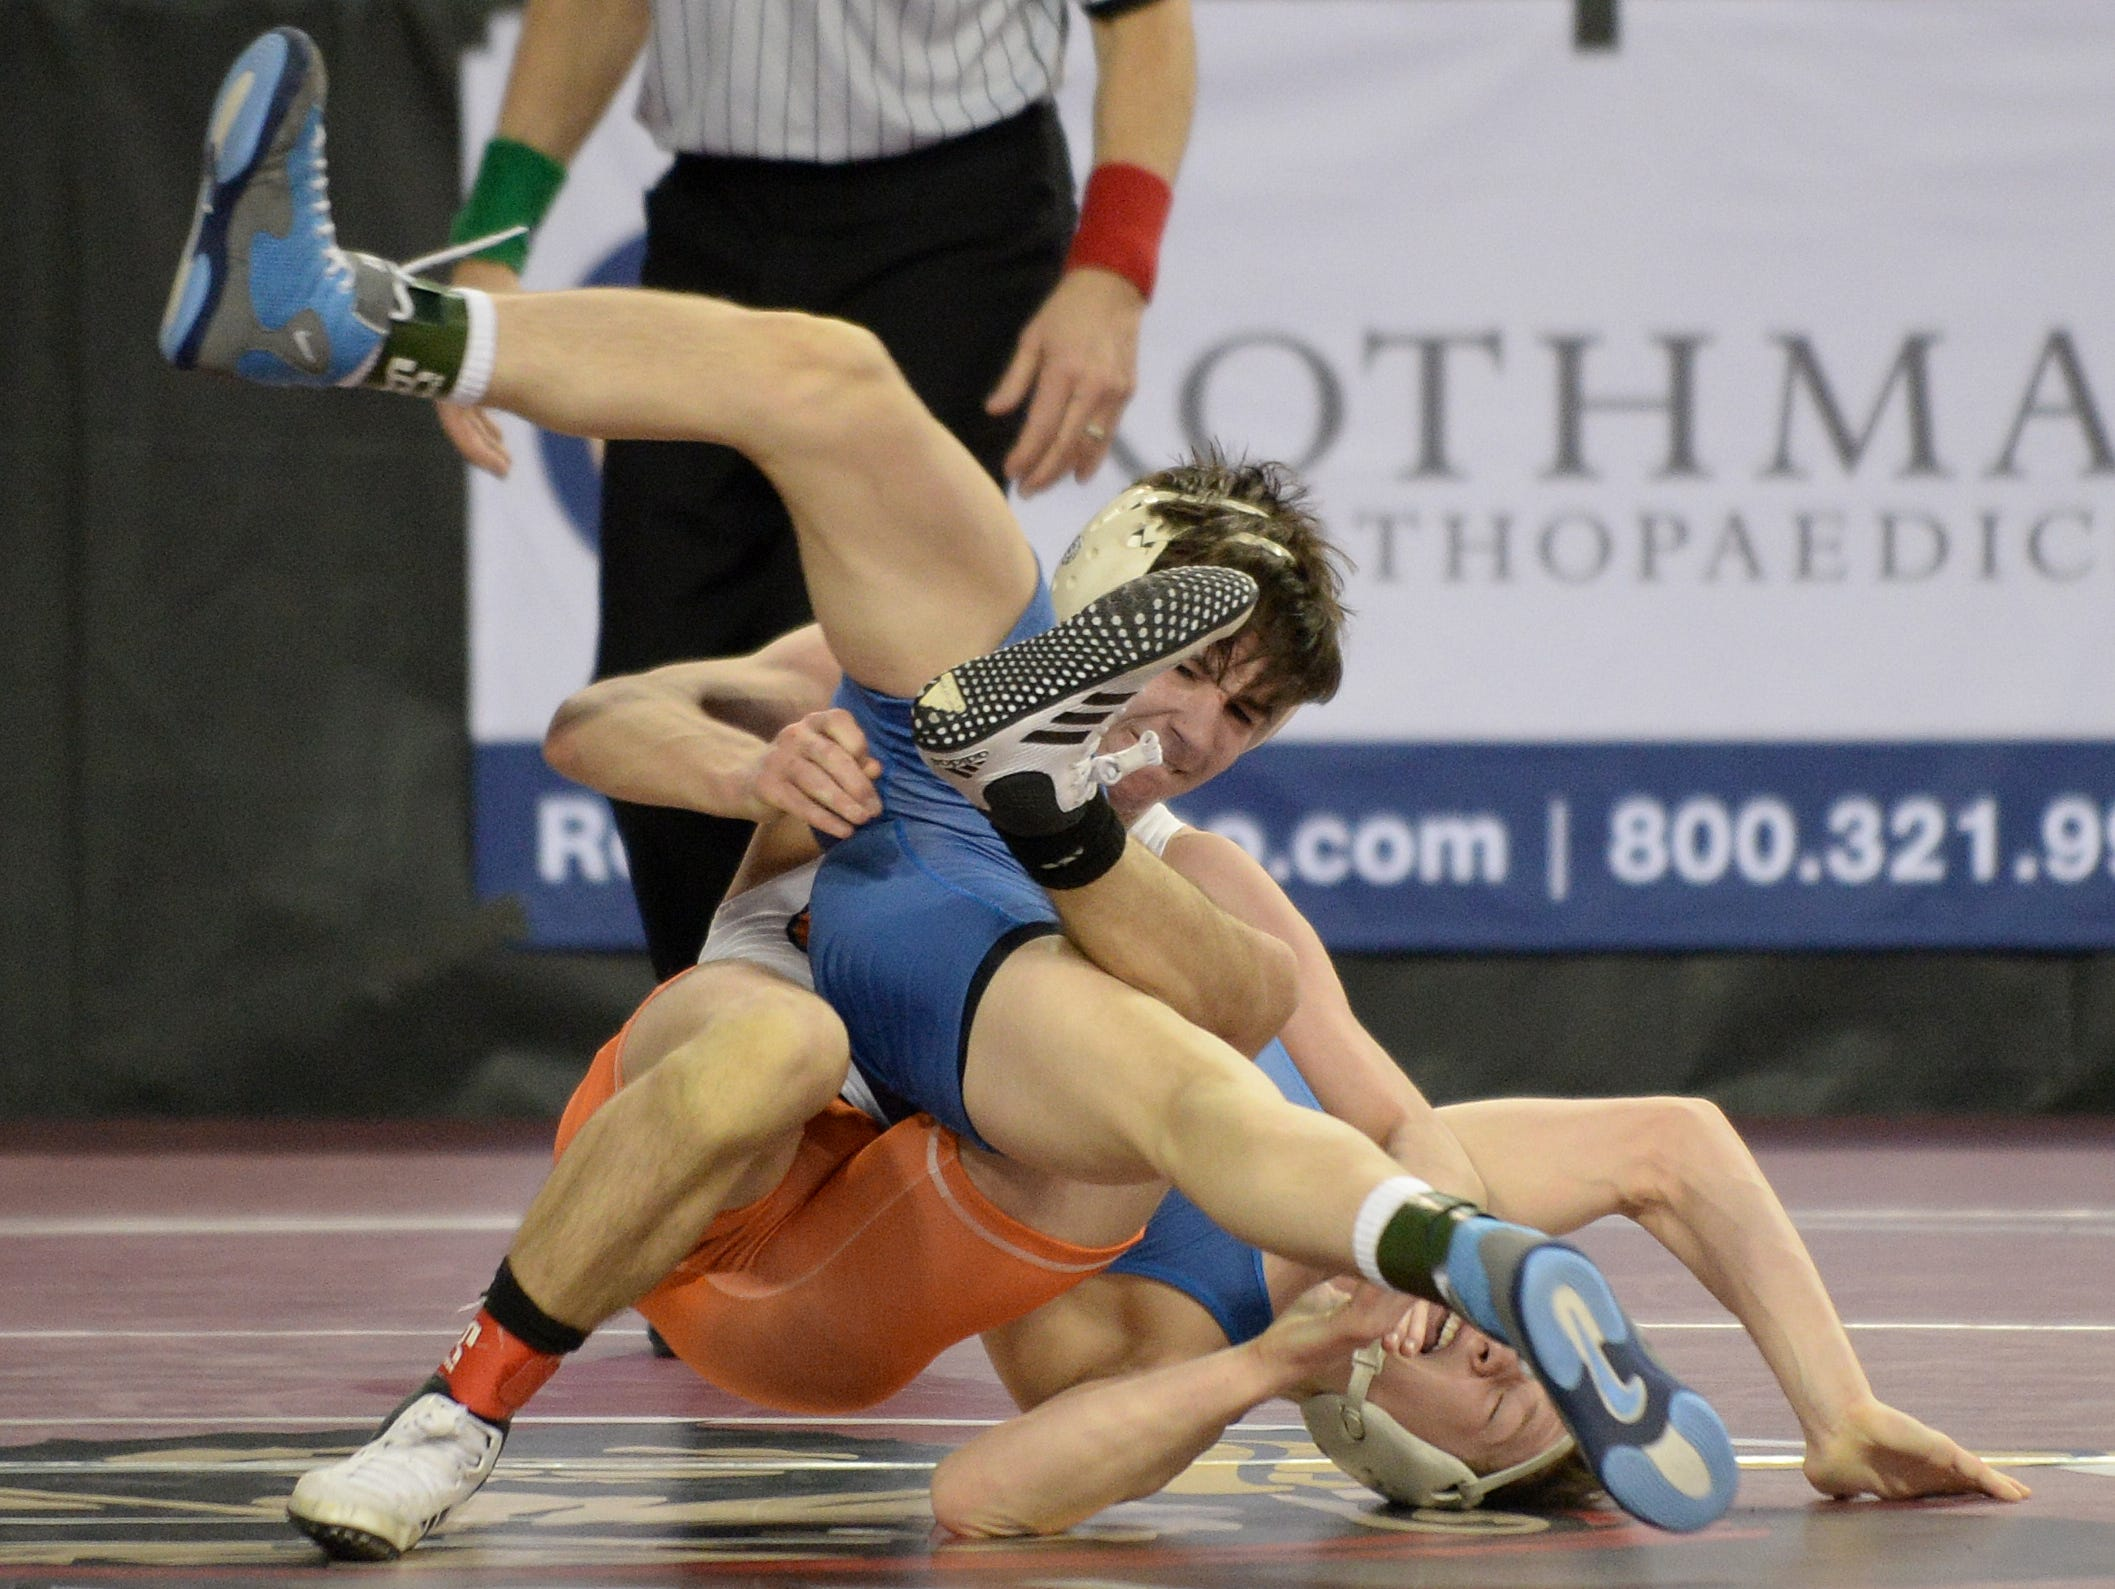 Westfield's Luke Hoerle wrestles Cherokee's Andrew Aromando in a 120-pound first round bout during the NJSIAA Individual Wrestling Championships at Boardwalk Hall in Atlantic City, Thursday, Feb. 28, 2019.